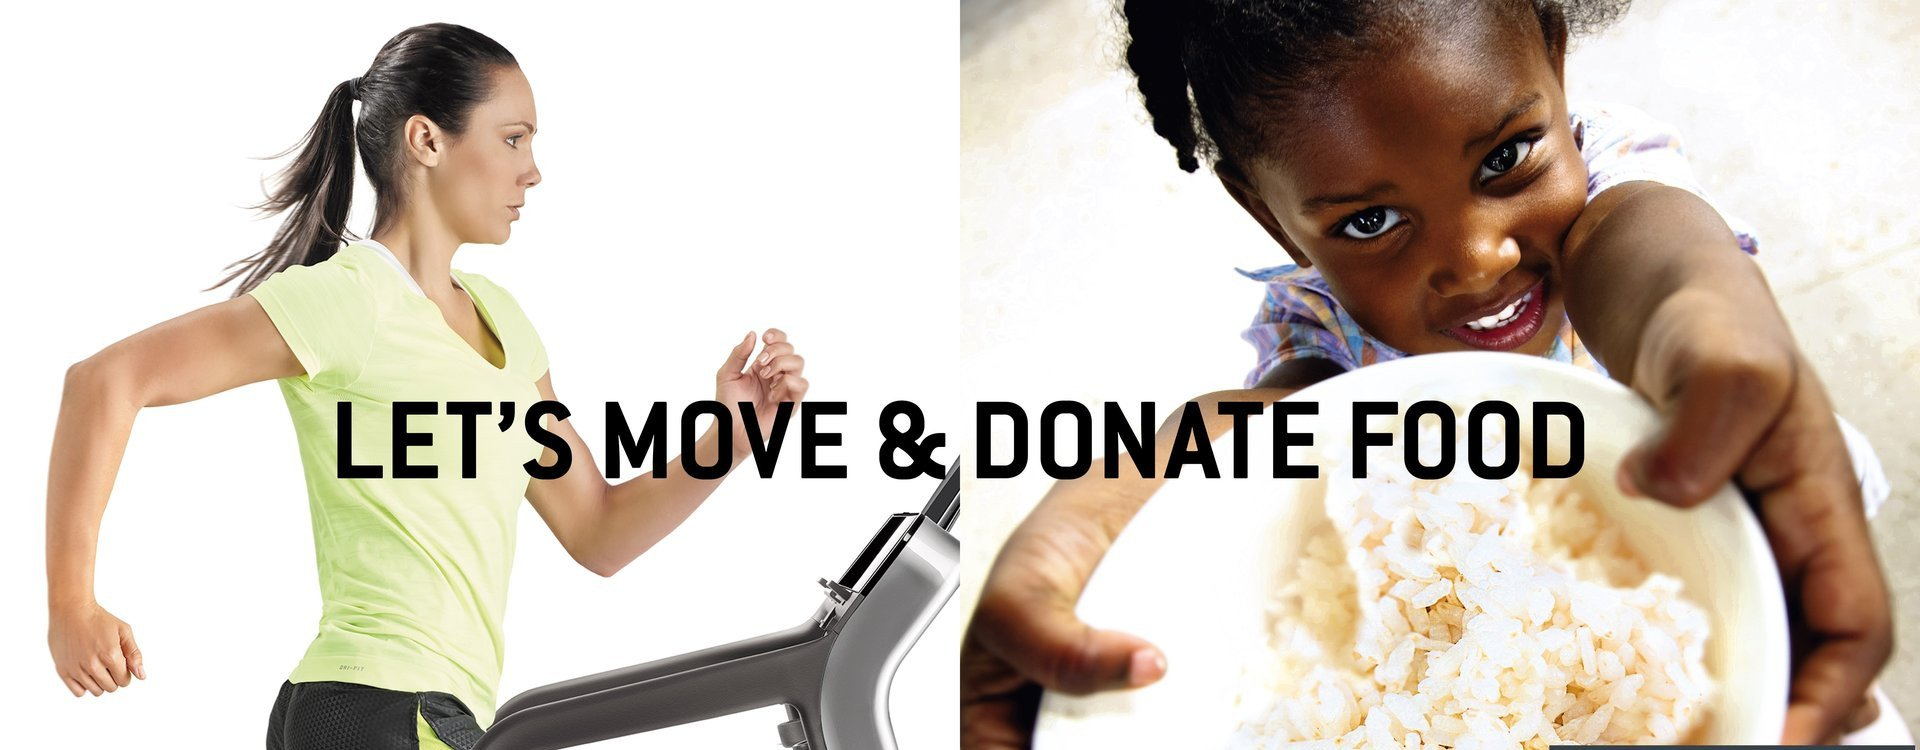 The New Technogym App – a win-win for both the haves and have-nots!